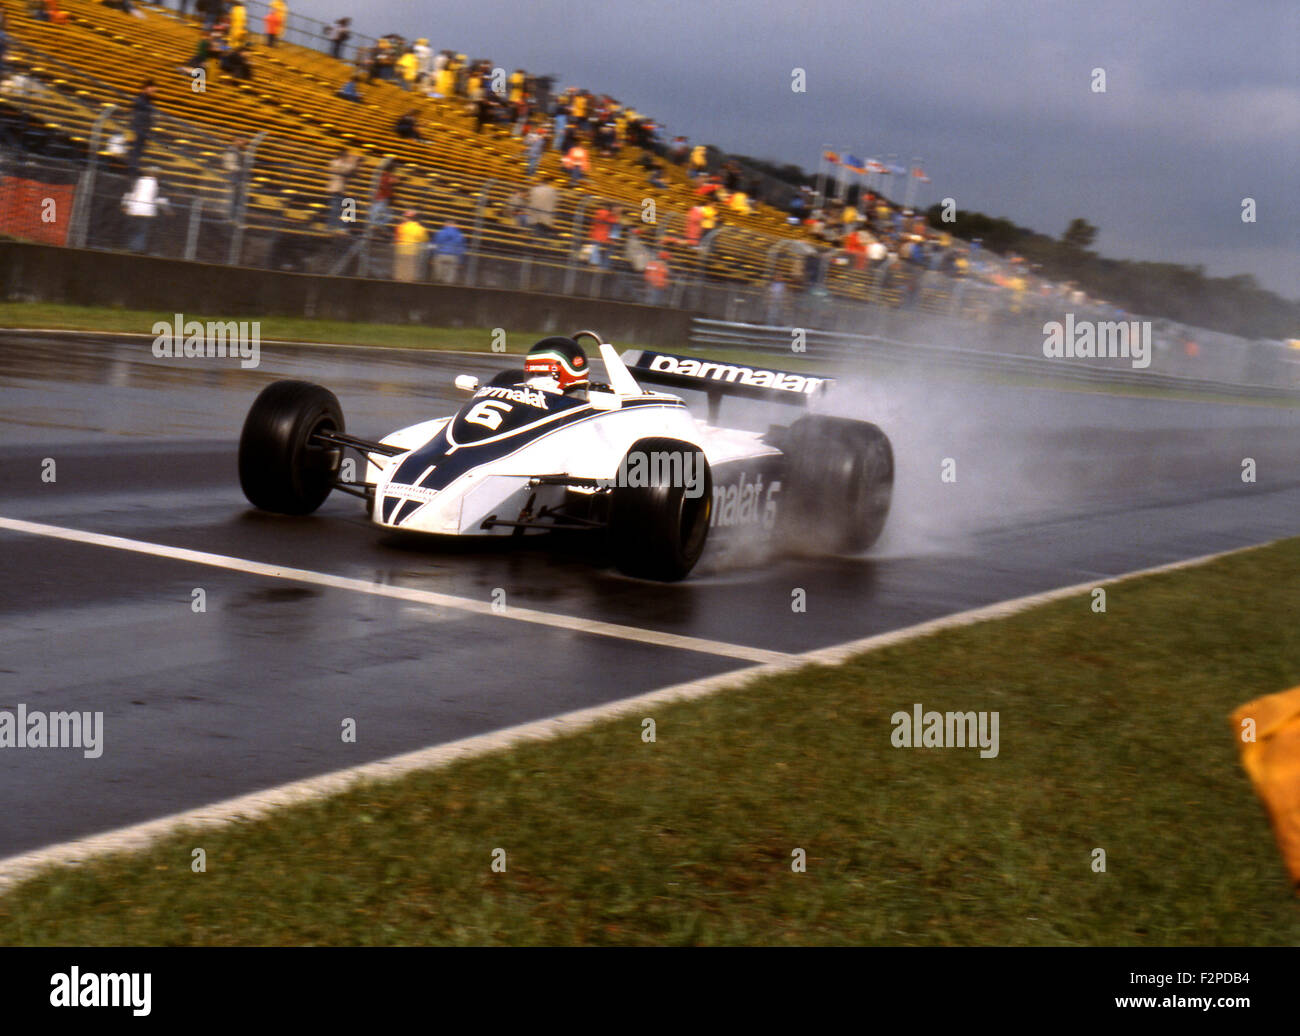 hector-rebaque-in-una-brabham-bt49-press